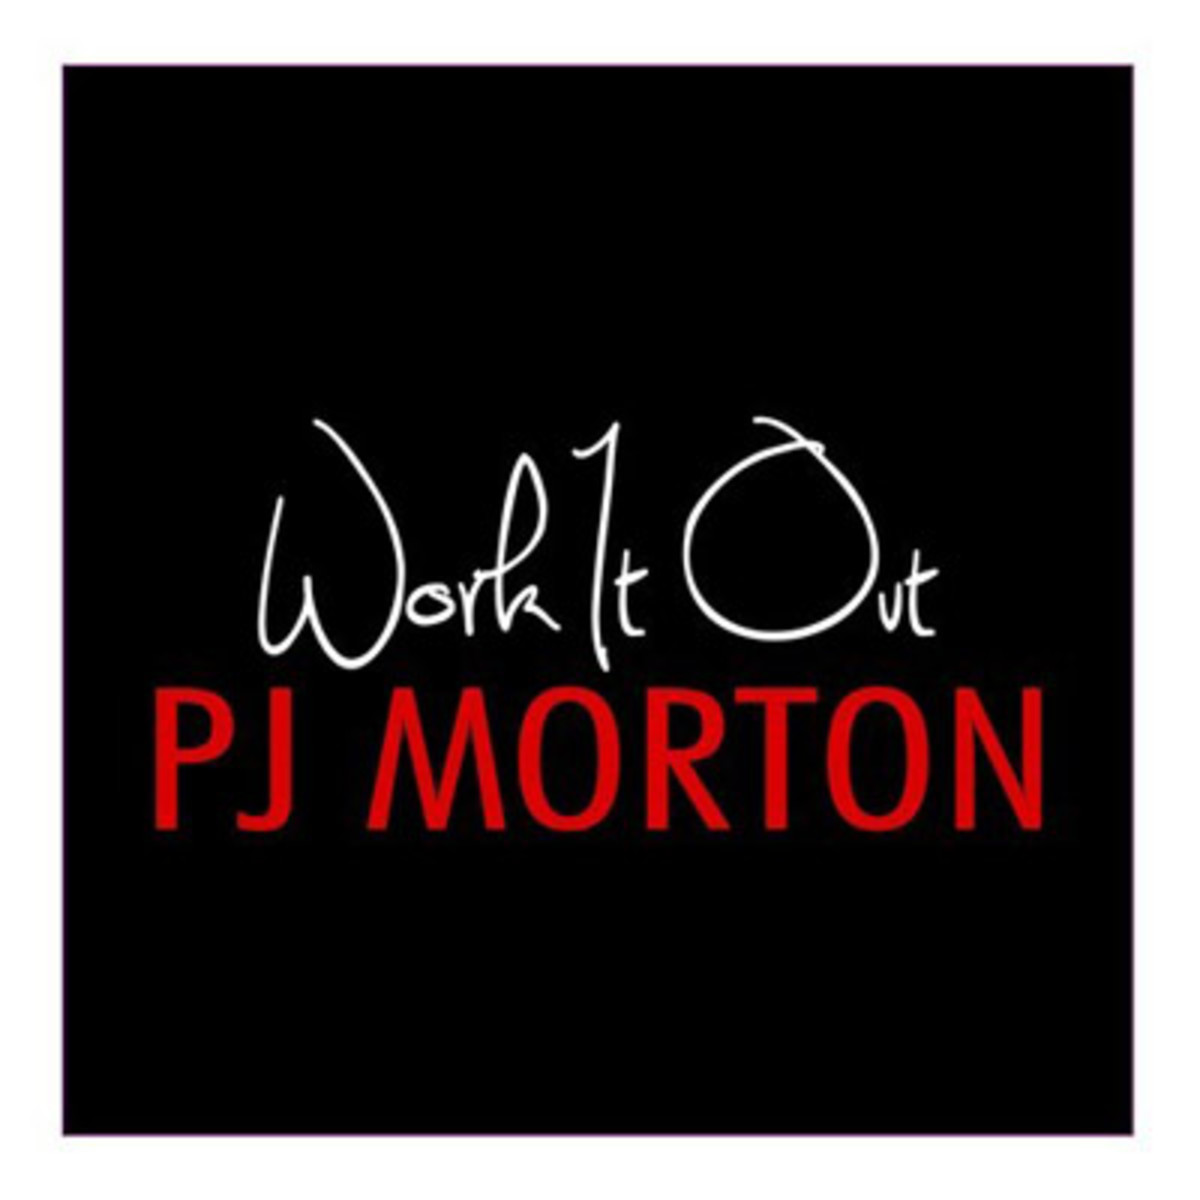 pjmorton-workitout.jpg